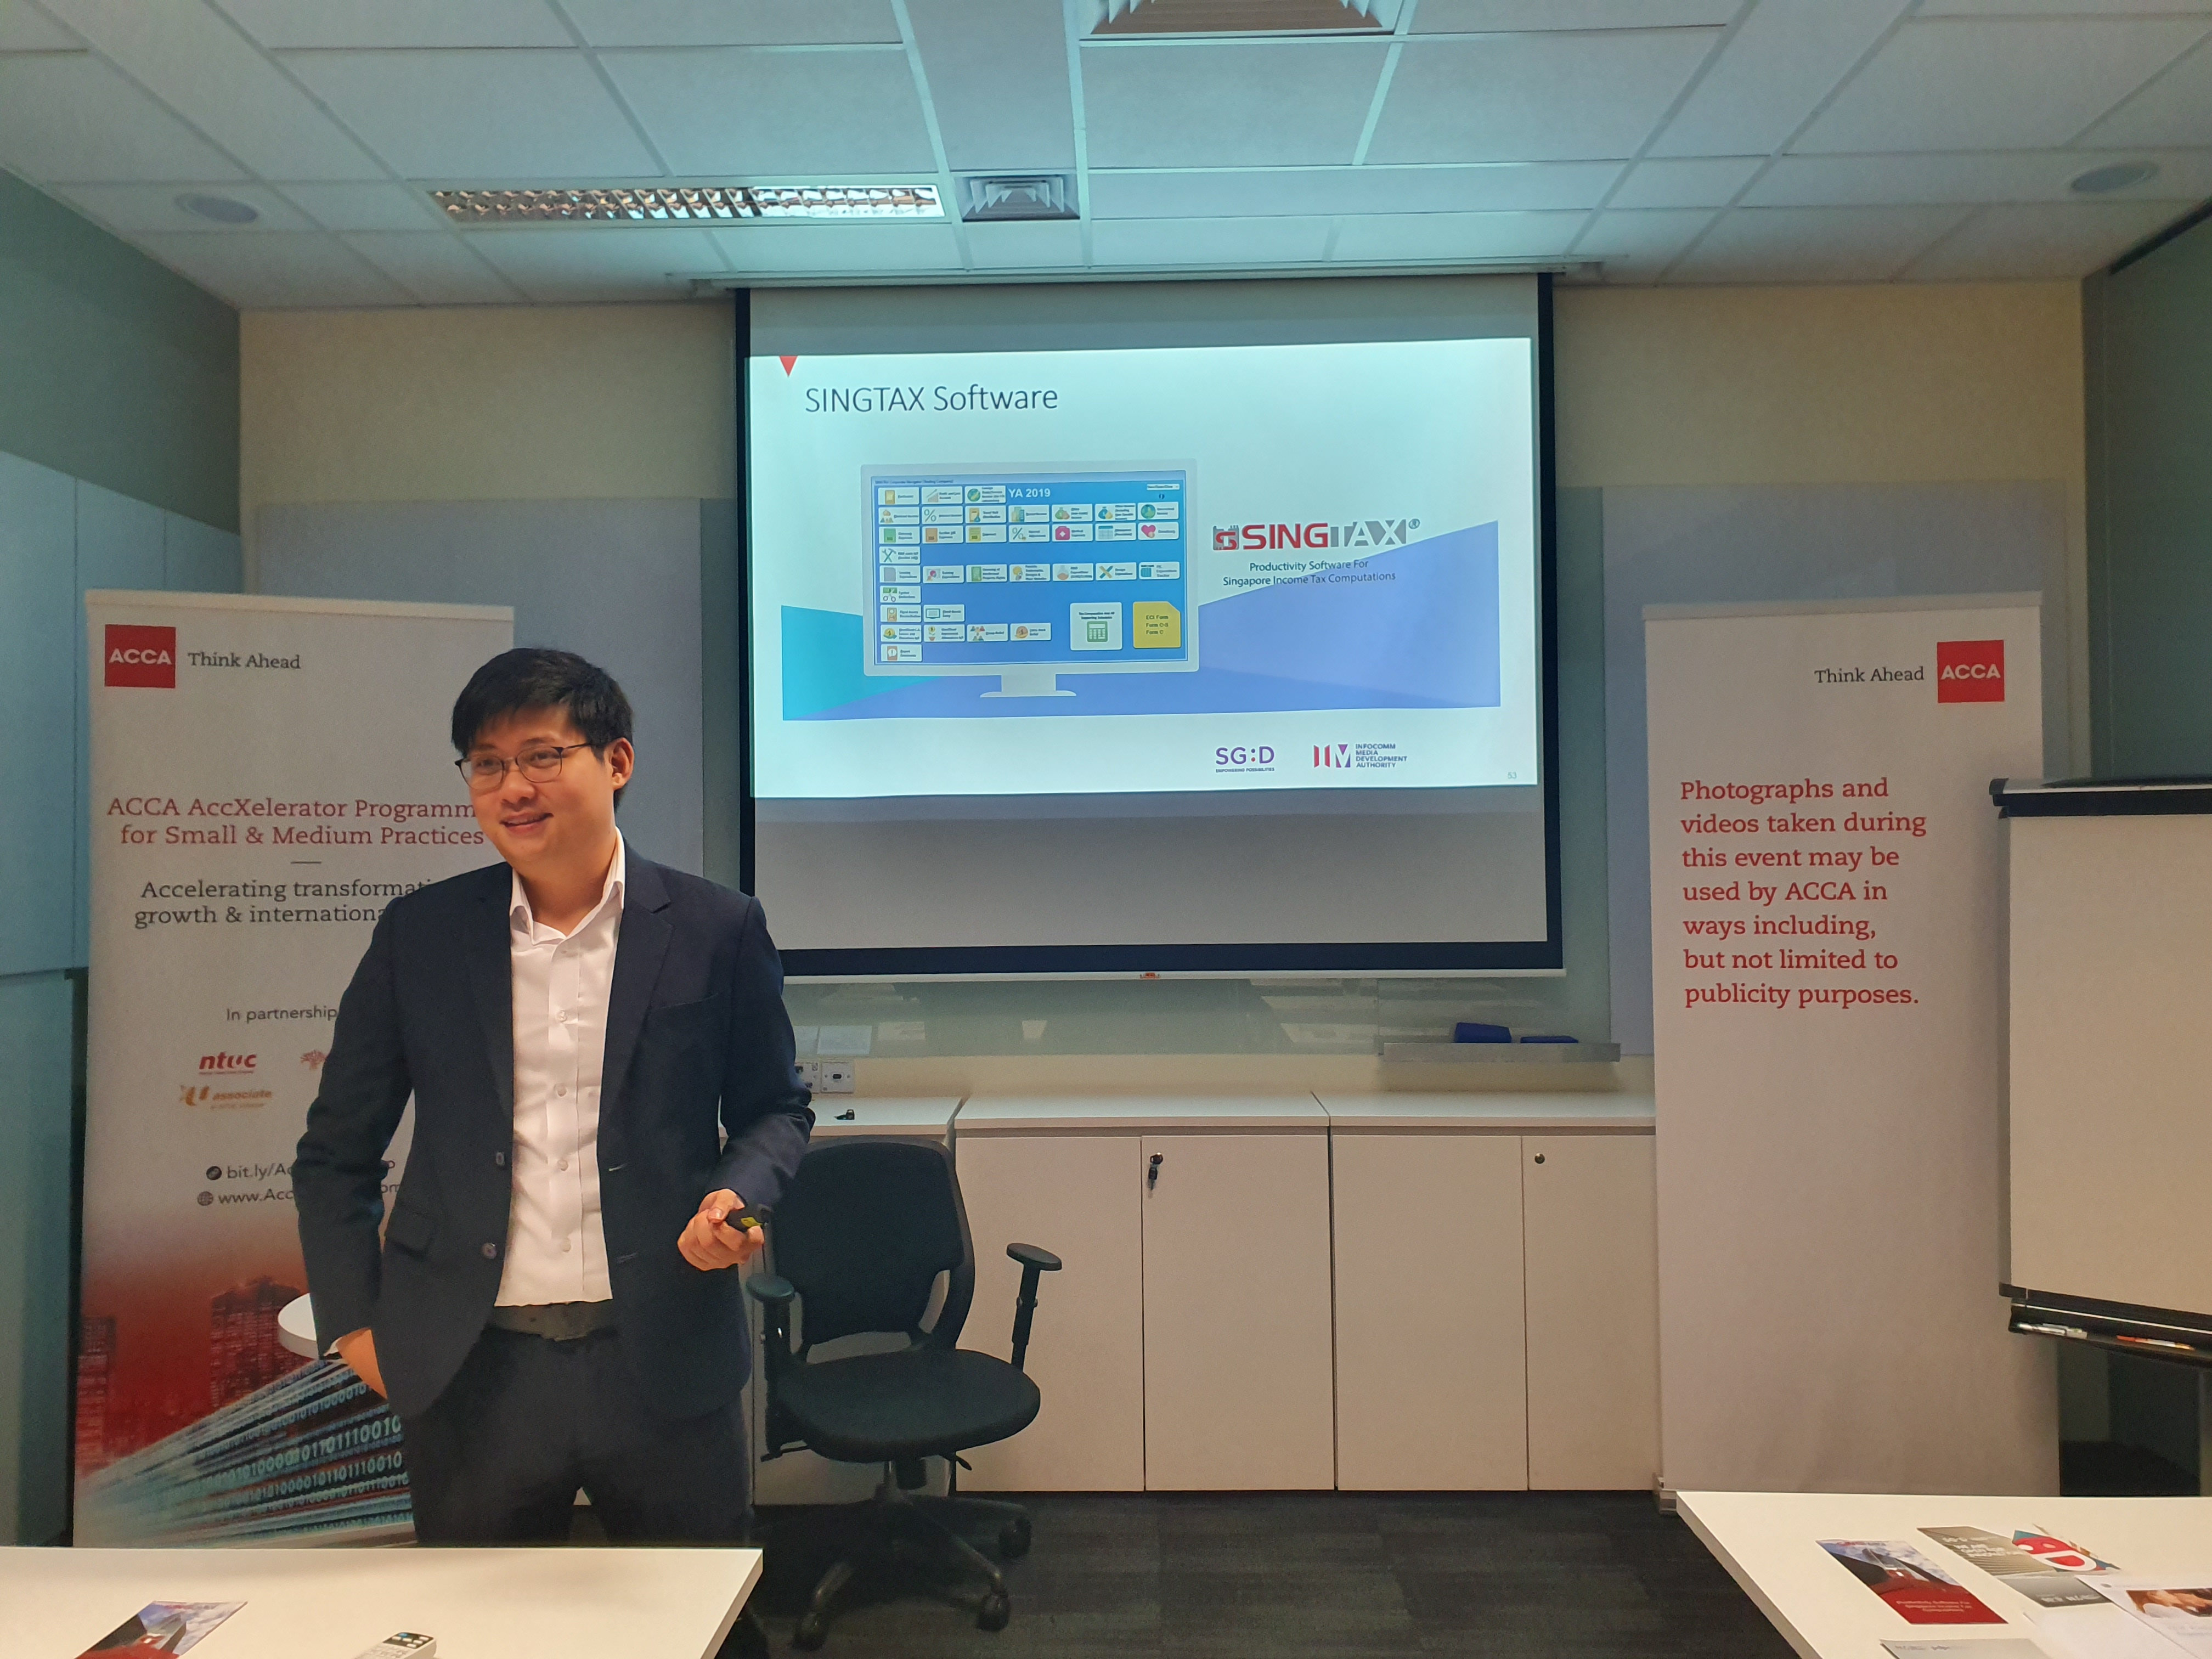 Jeremy Tan presenting SINGTAX at ACCA AccXelerator Programme for Small & Medium Practices (SMPs)